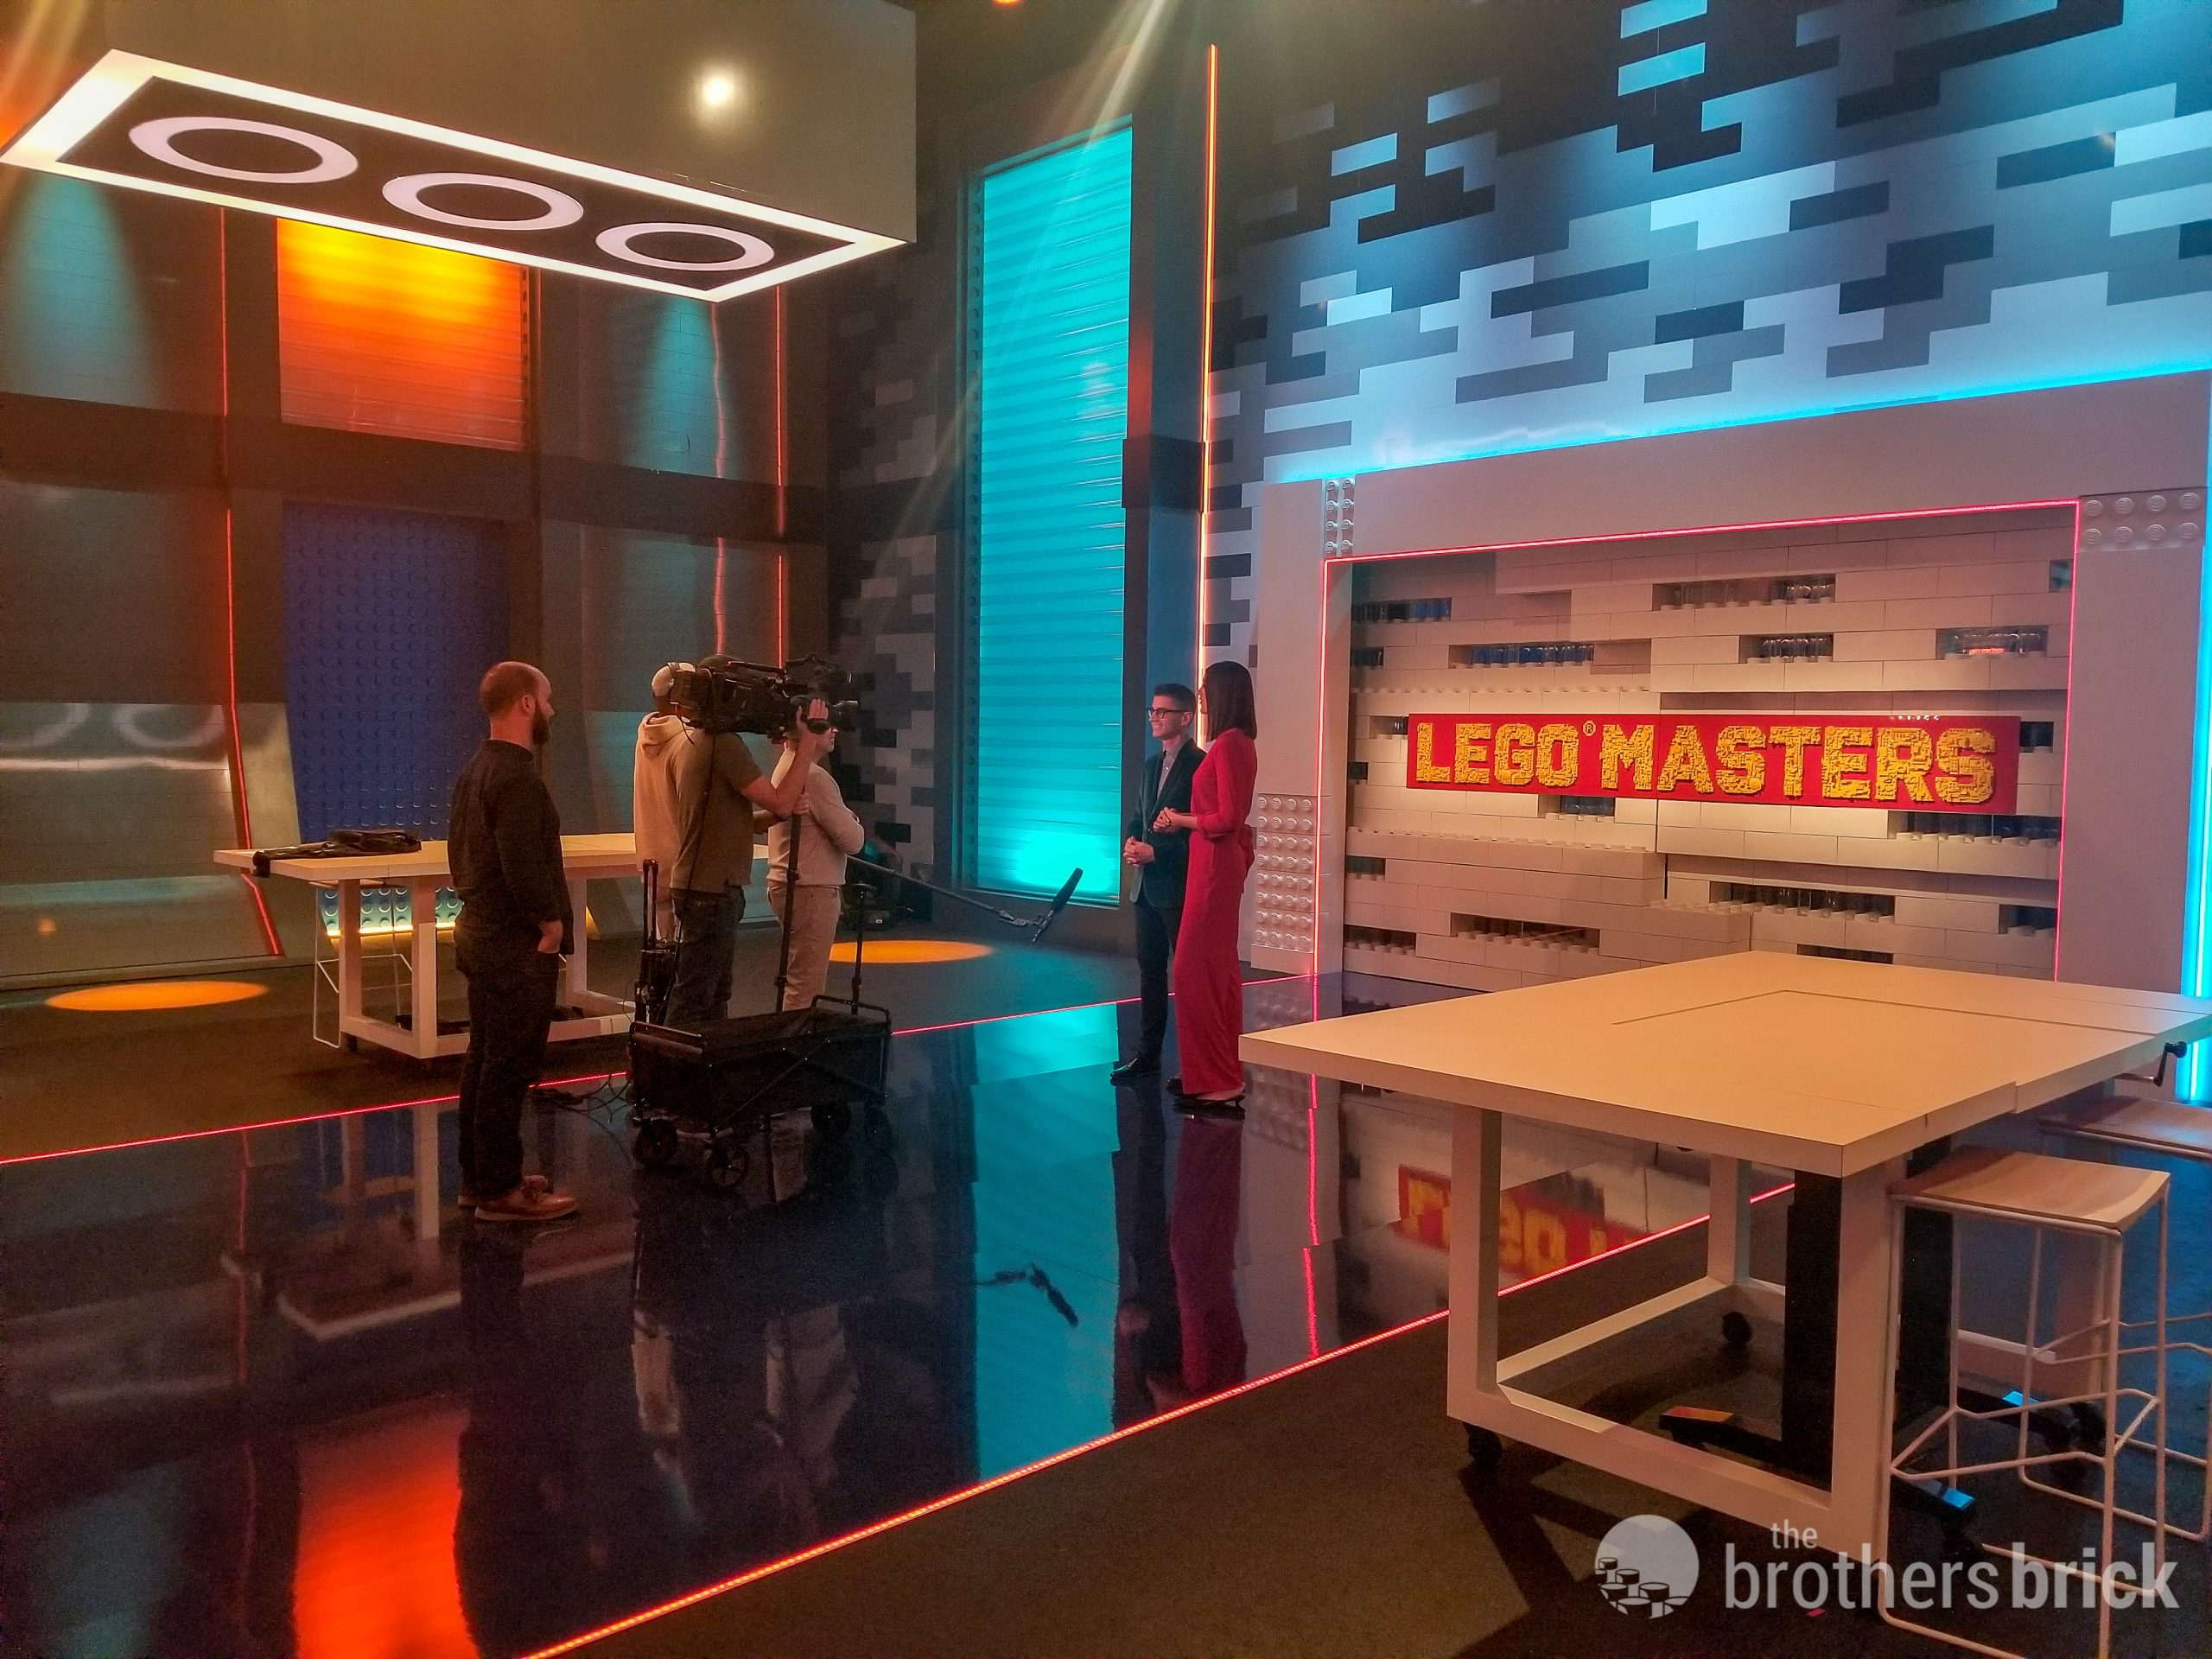 Lego Masters Judges Jamie Berard And Amy Corbett Interview The Brothers Brick The Brothers Brick